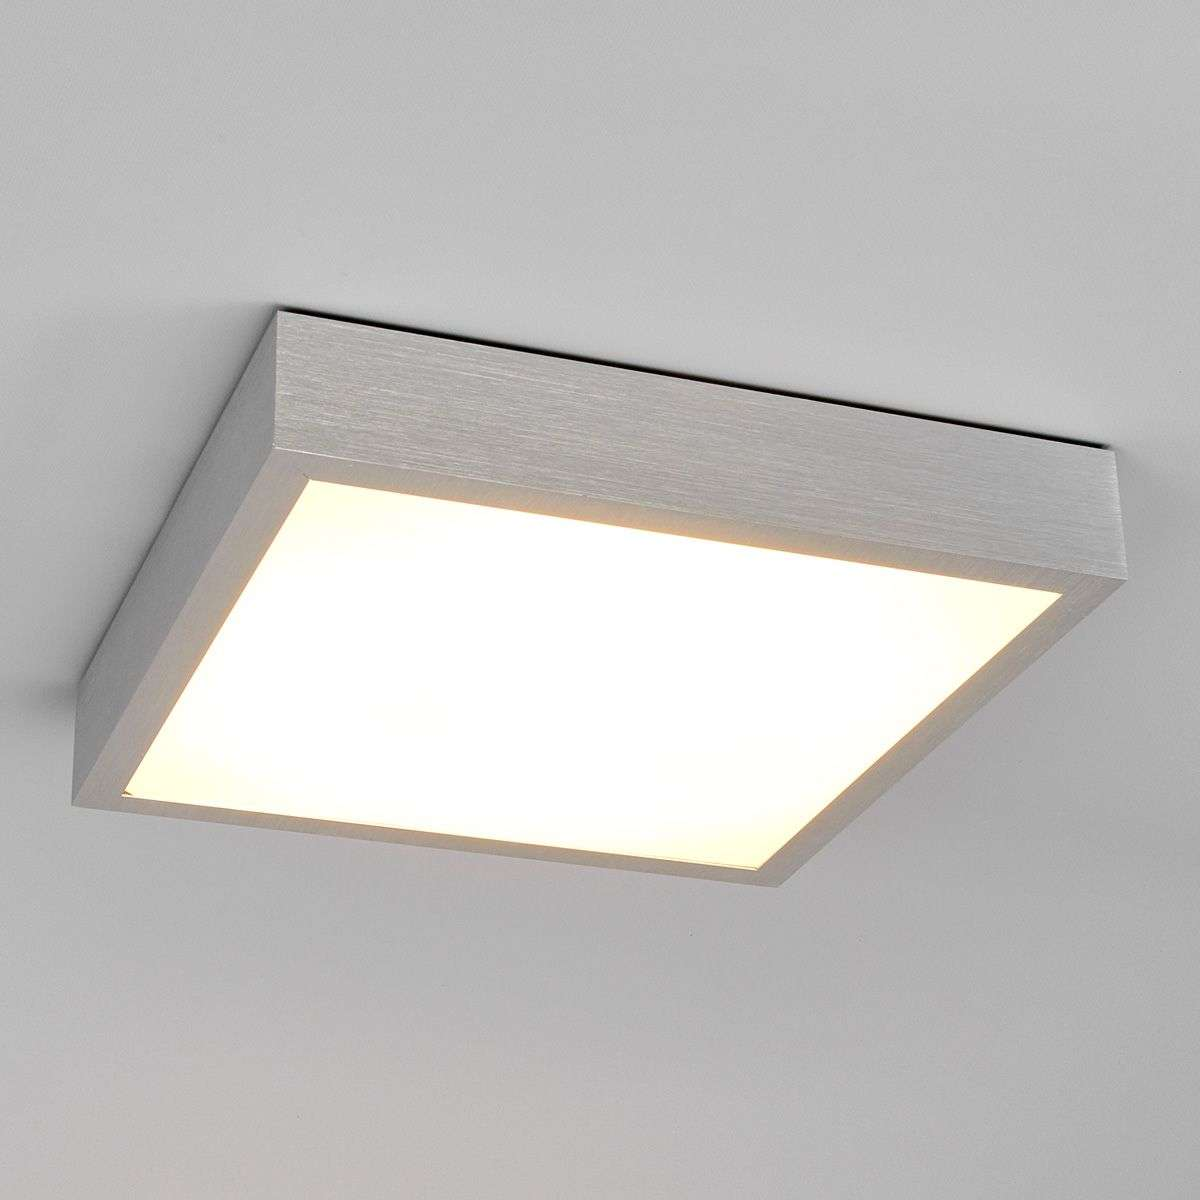 Finnian square LED ceiling light, aluminium